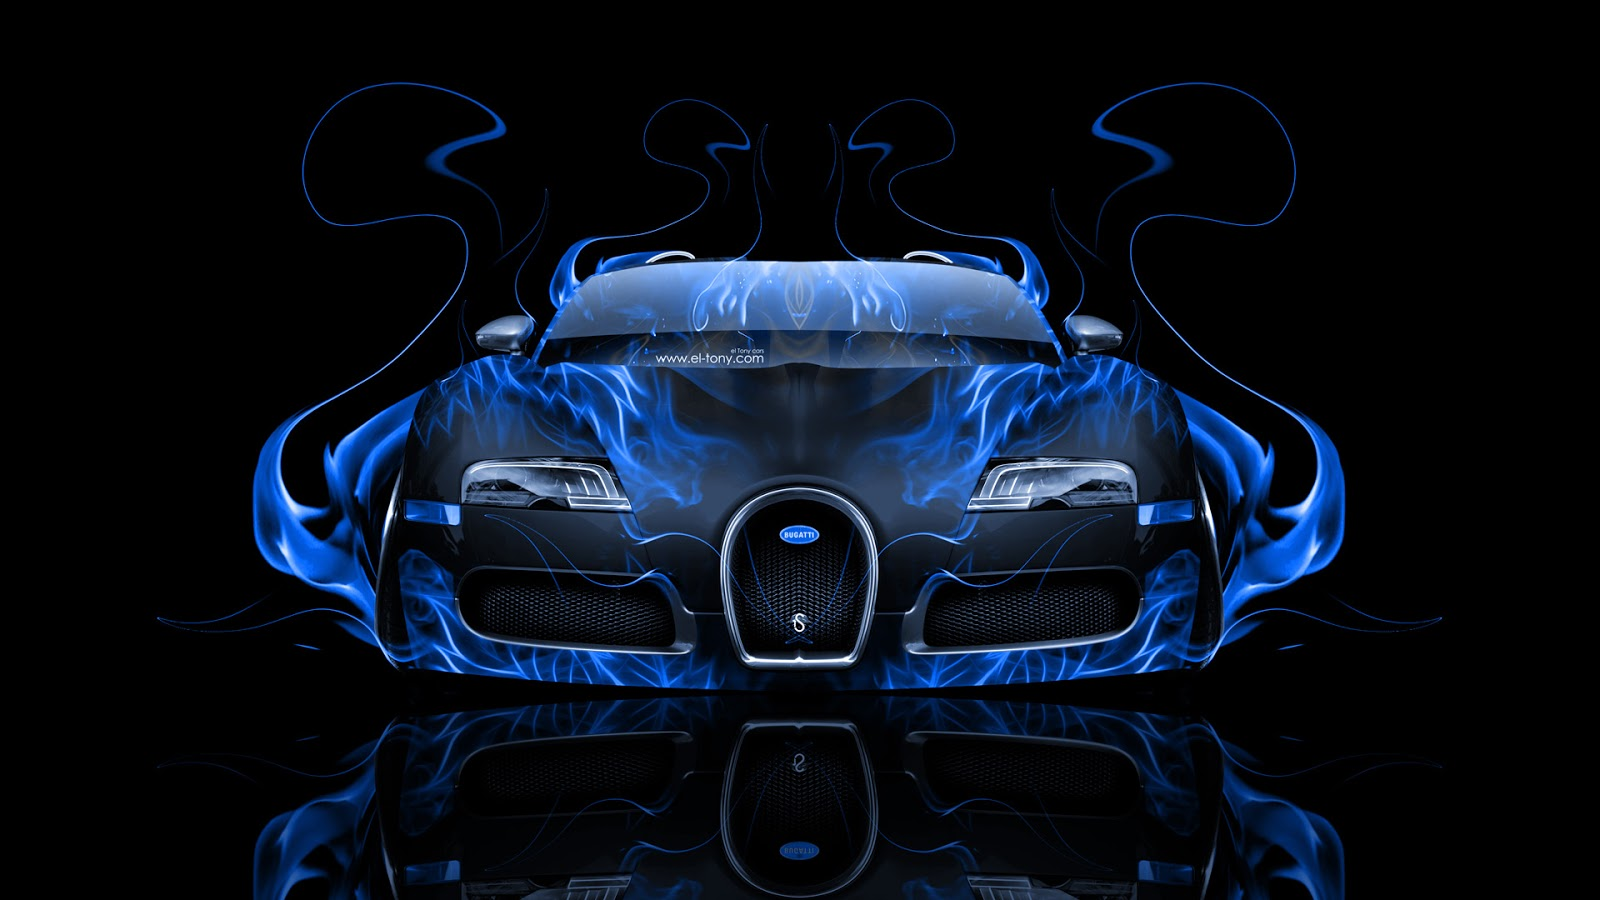 buggati veyron cool desktop - photo #20